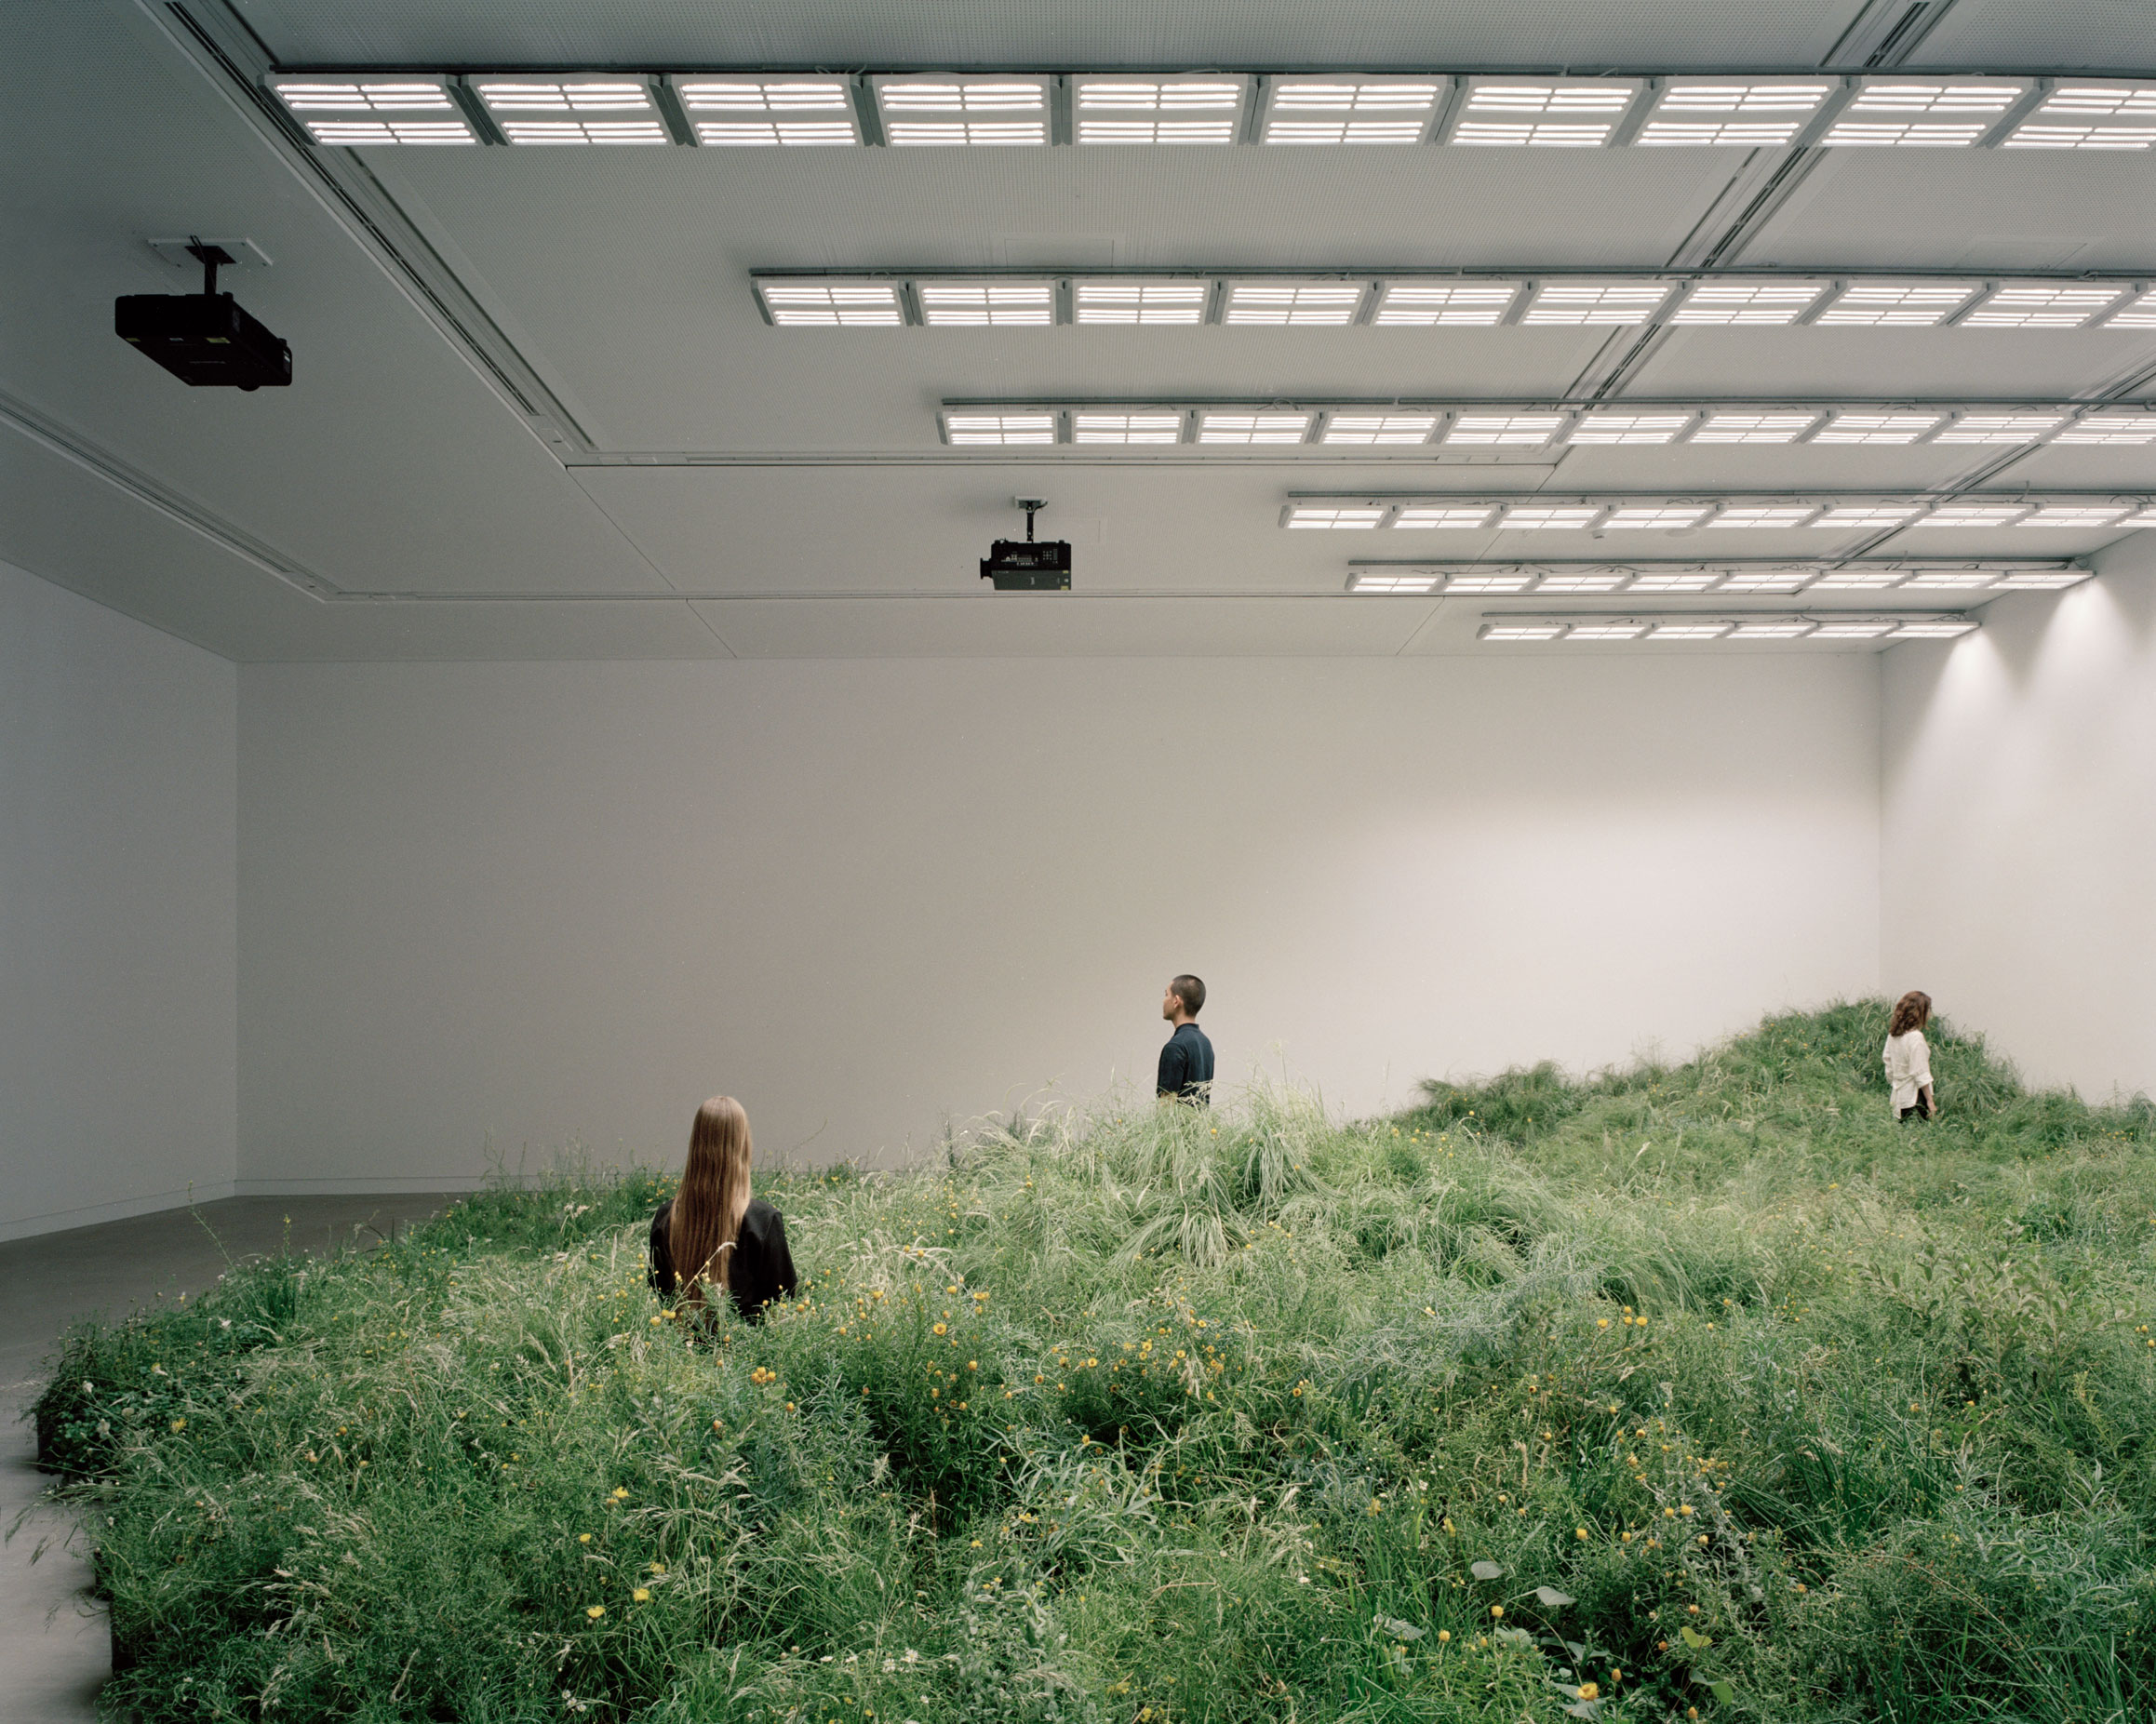 The main component of the exhibition, Grasslands Repair, includes more than 10,000 plants from 65 species of Victorian Western Plains grasses. Image: Rory Gardiner